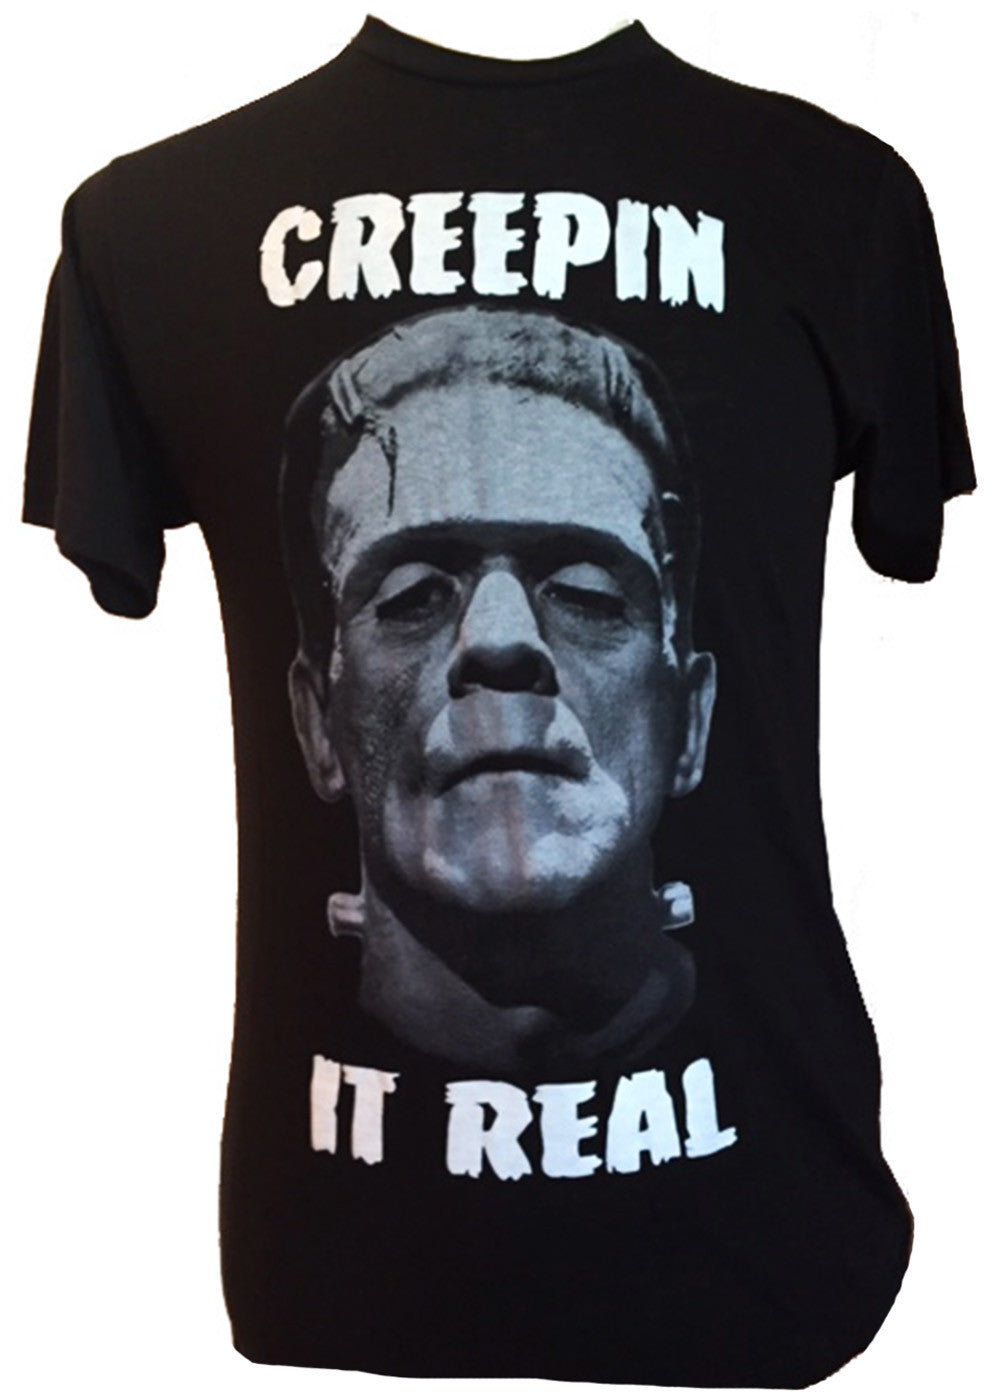 CREEPIN IT REAL TEE - Trailsclothing.com